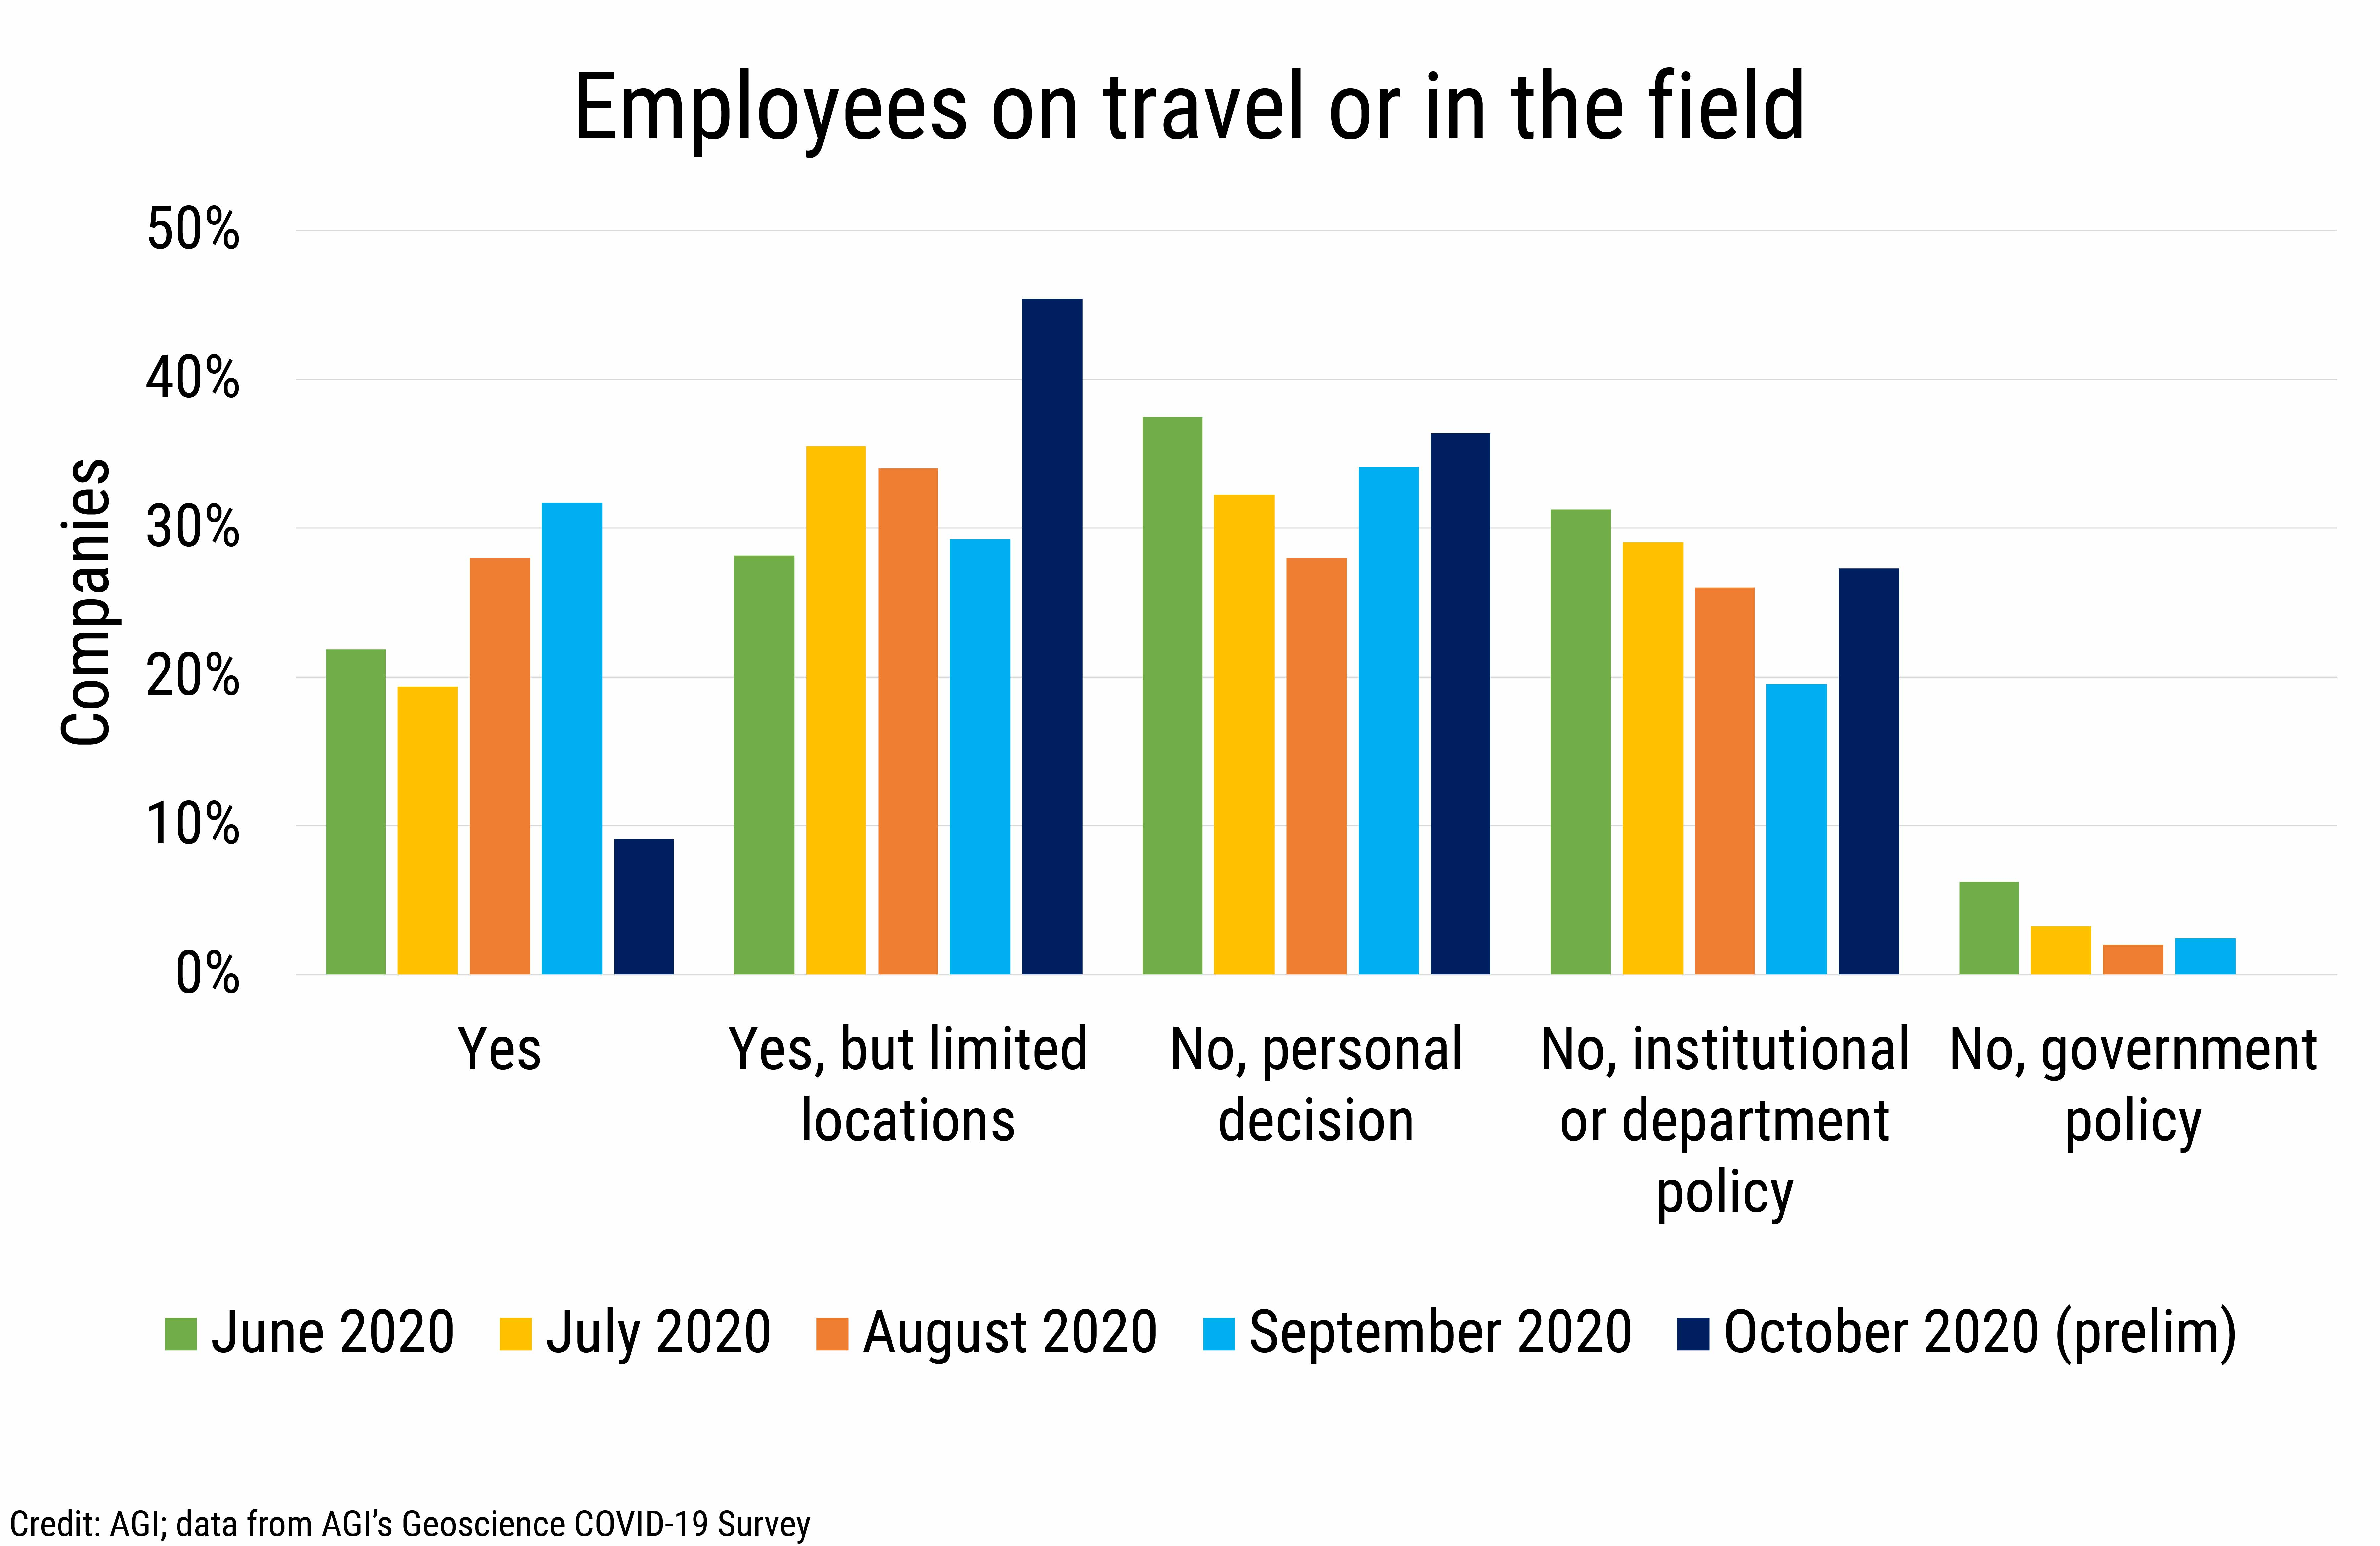 DB_2020-027 chart 06:  Employees on travel or in the field (Credit: AGI; data from AGI's Geoscience COVID-19 Survey)